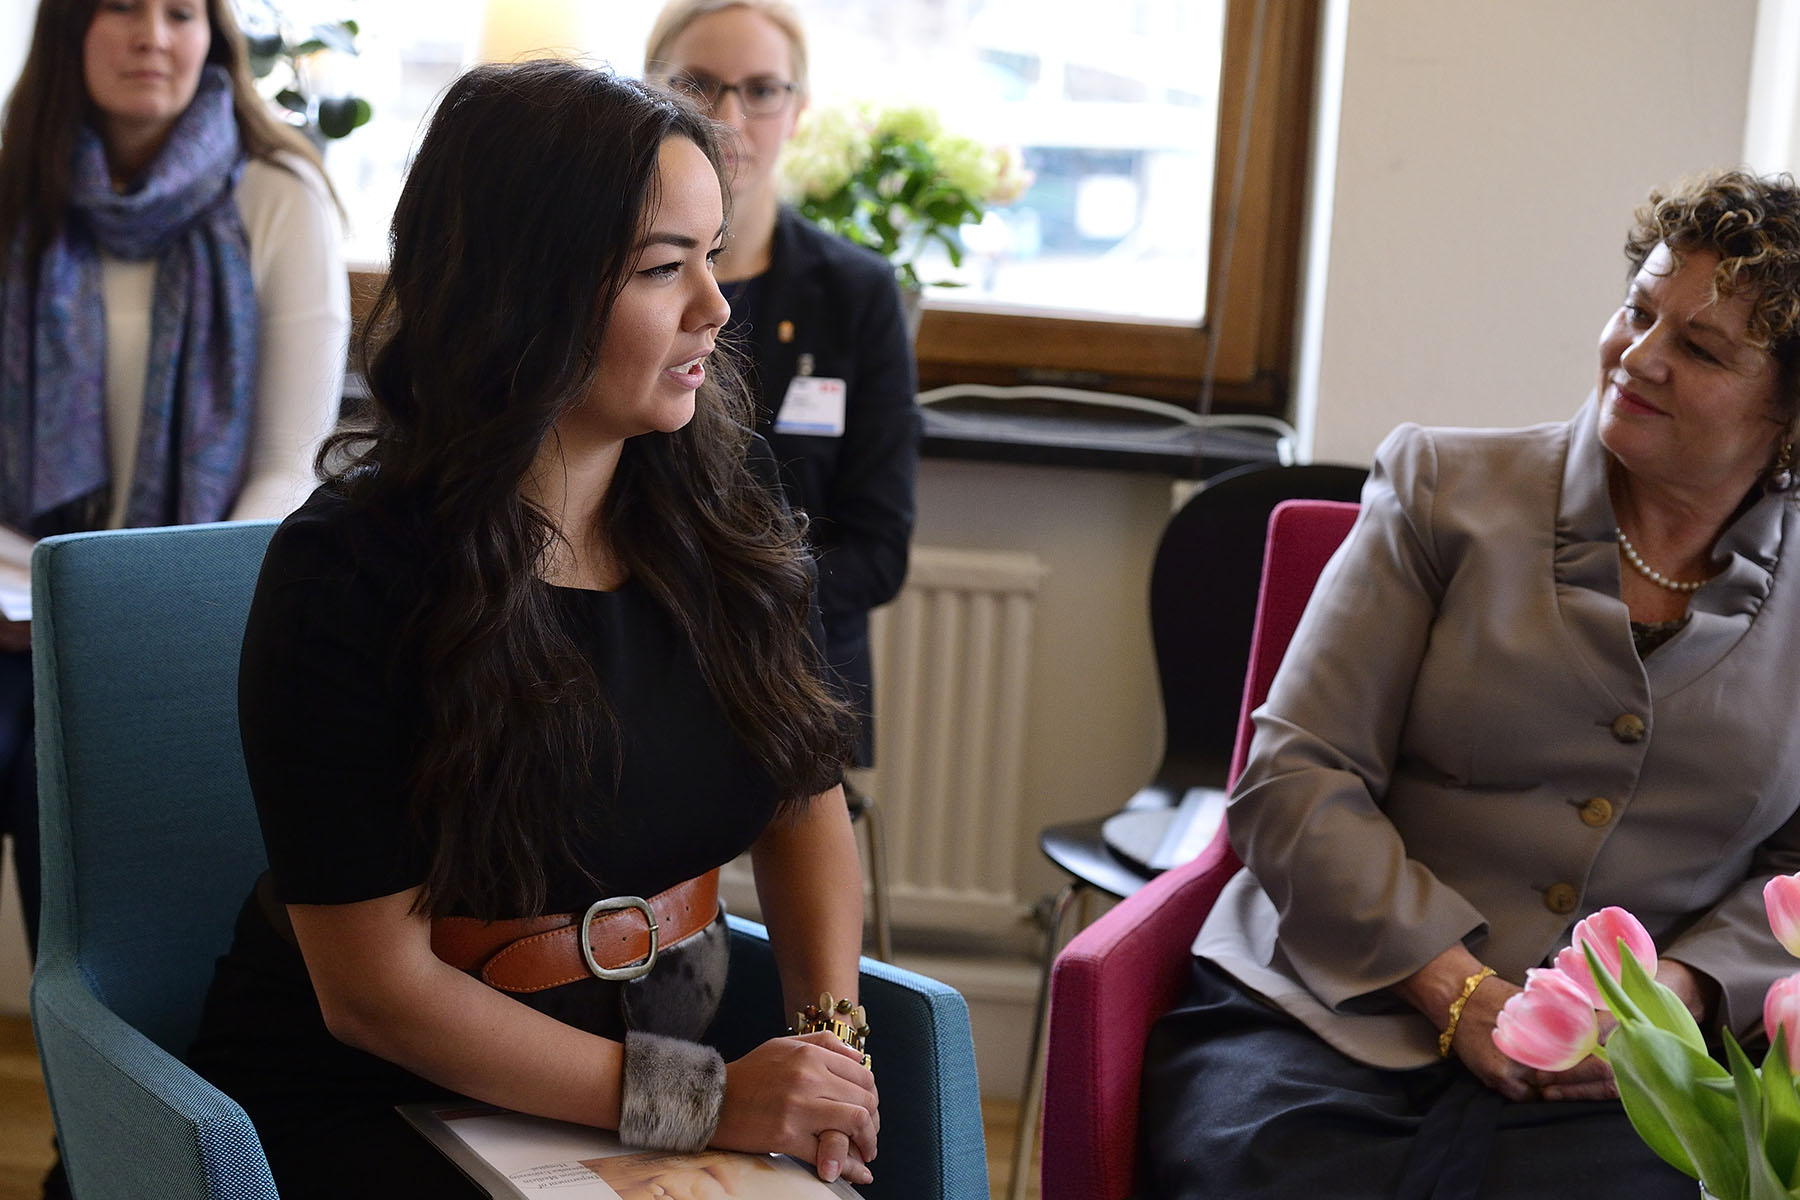 Ms. Maatalii Okalik, President of National Inuit Youth Council, was one of the Canadian delegates who visited Haga Gothenburg with Mrs. Johnston.